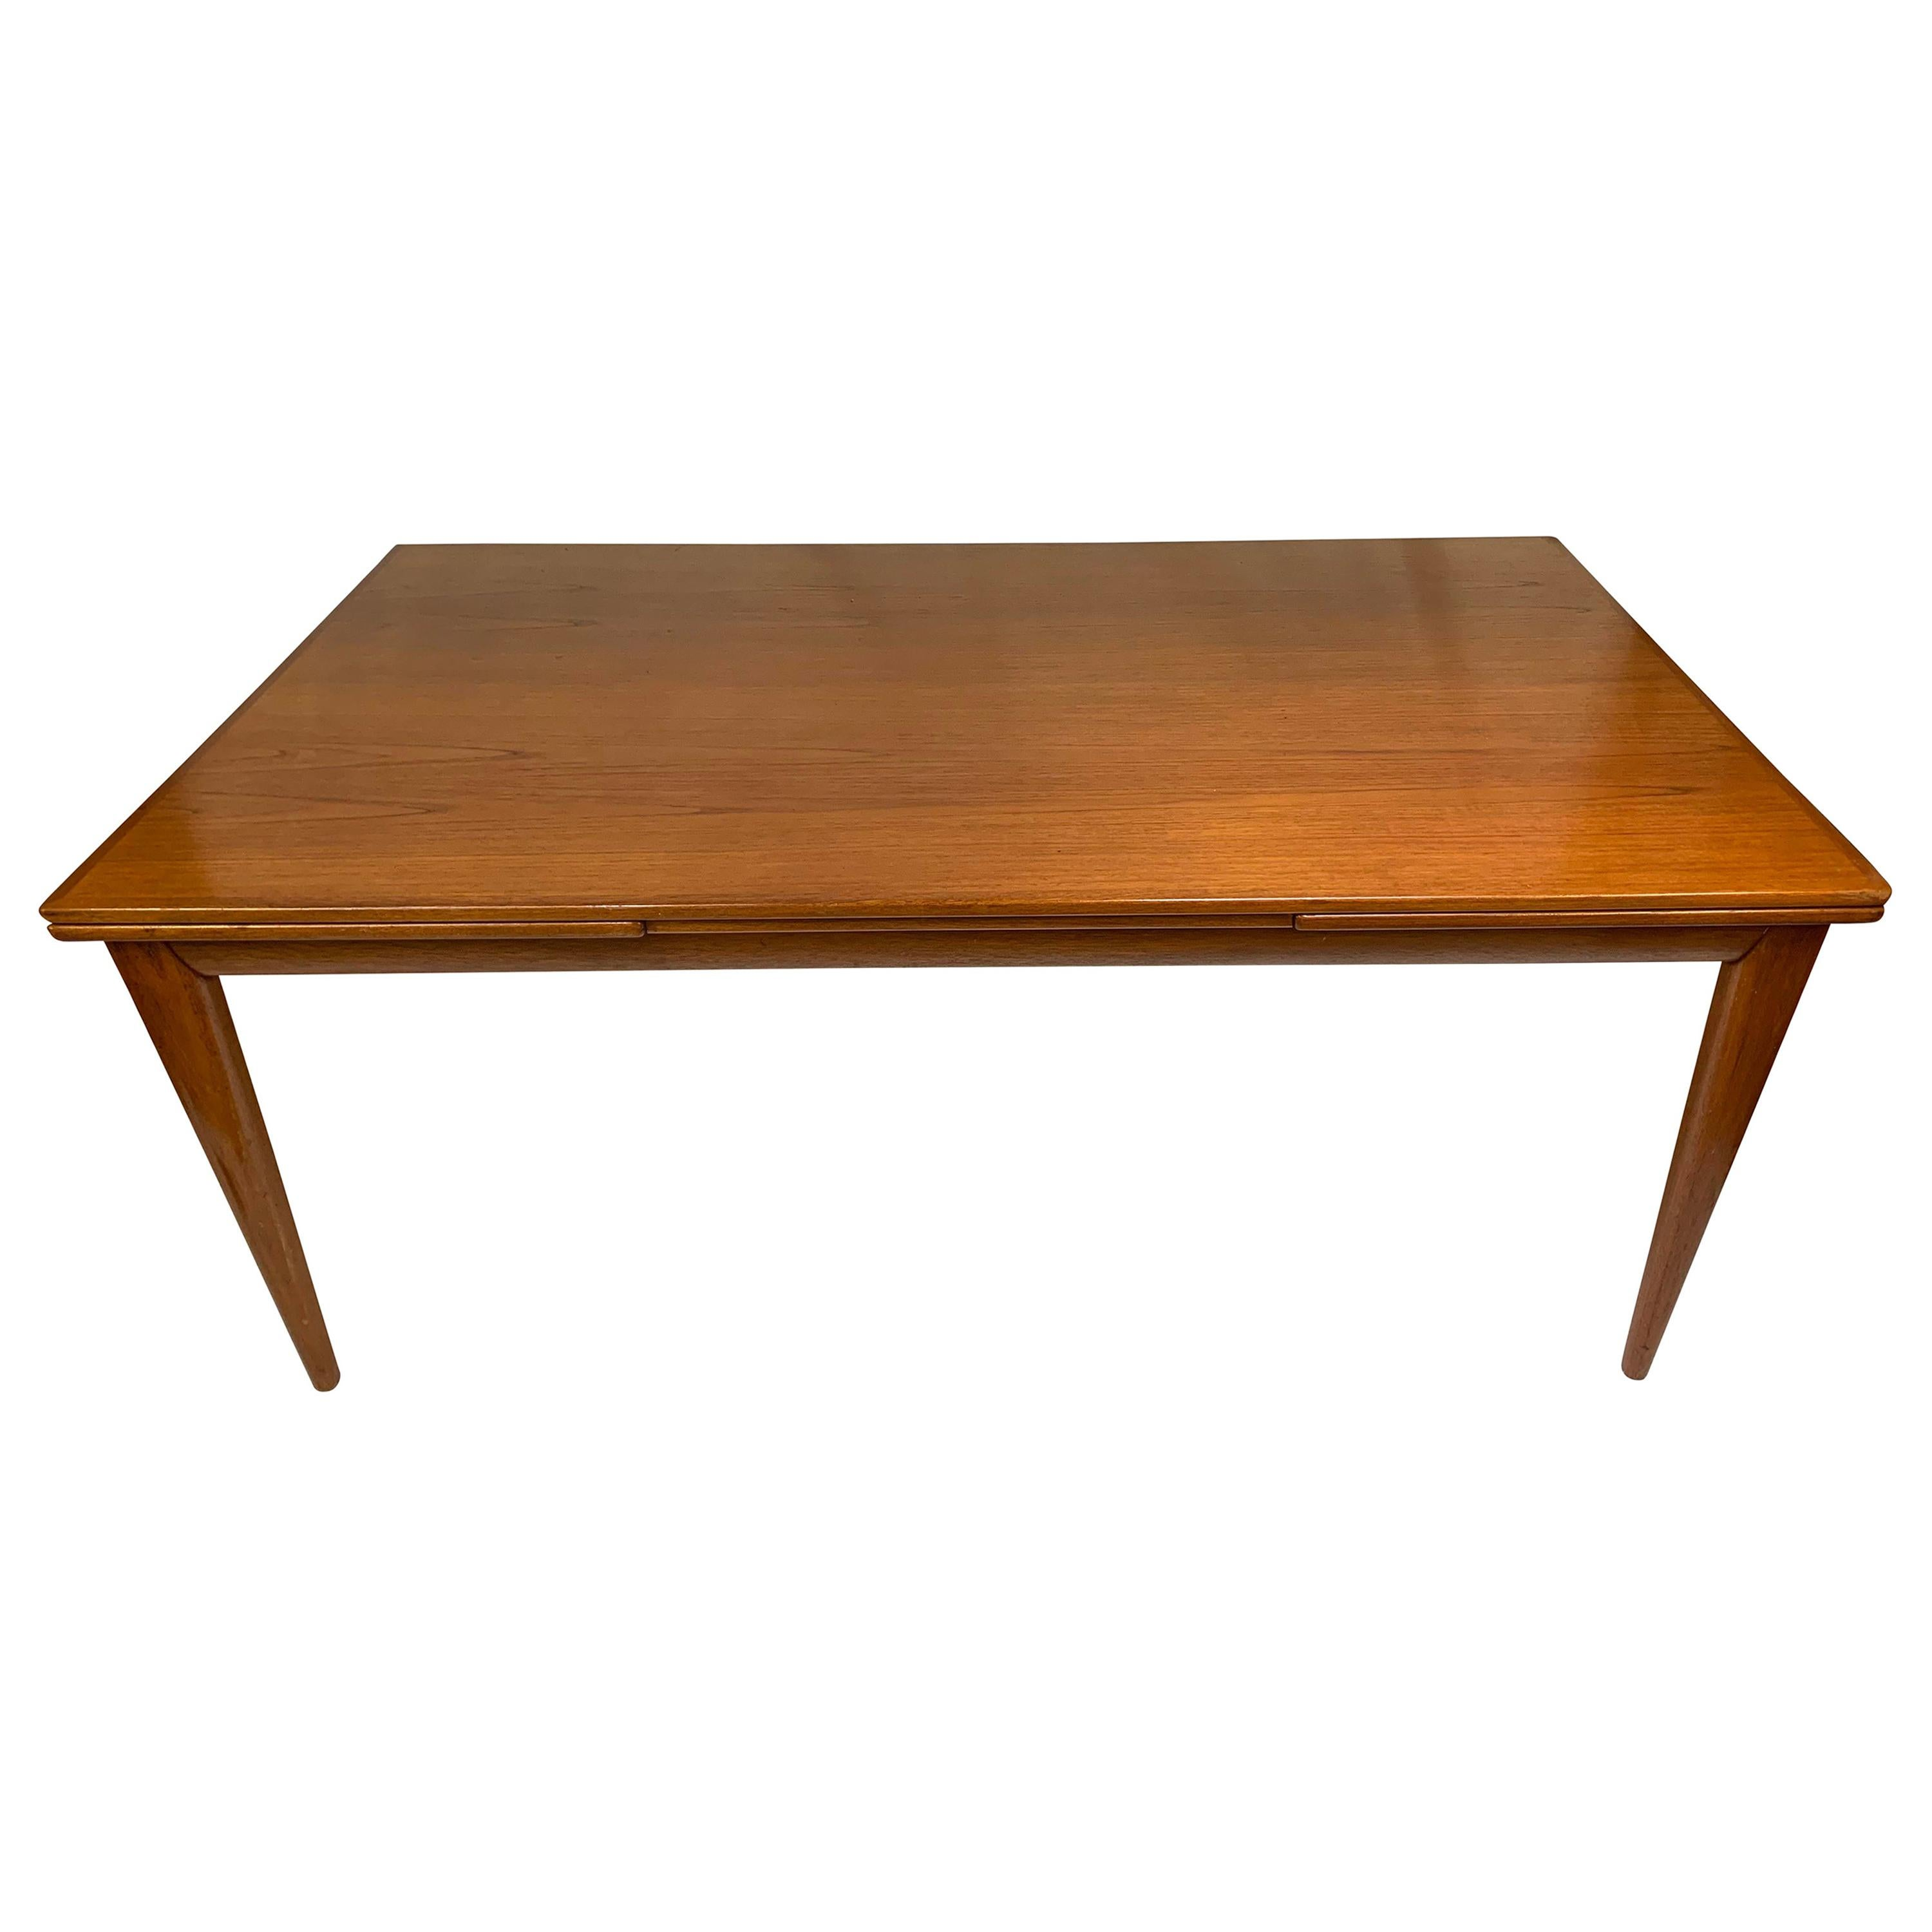 Midcentury Teak Extension Dining Table by Niels Otto Møller